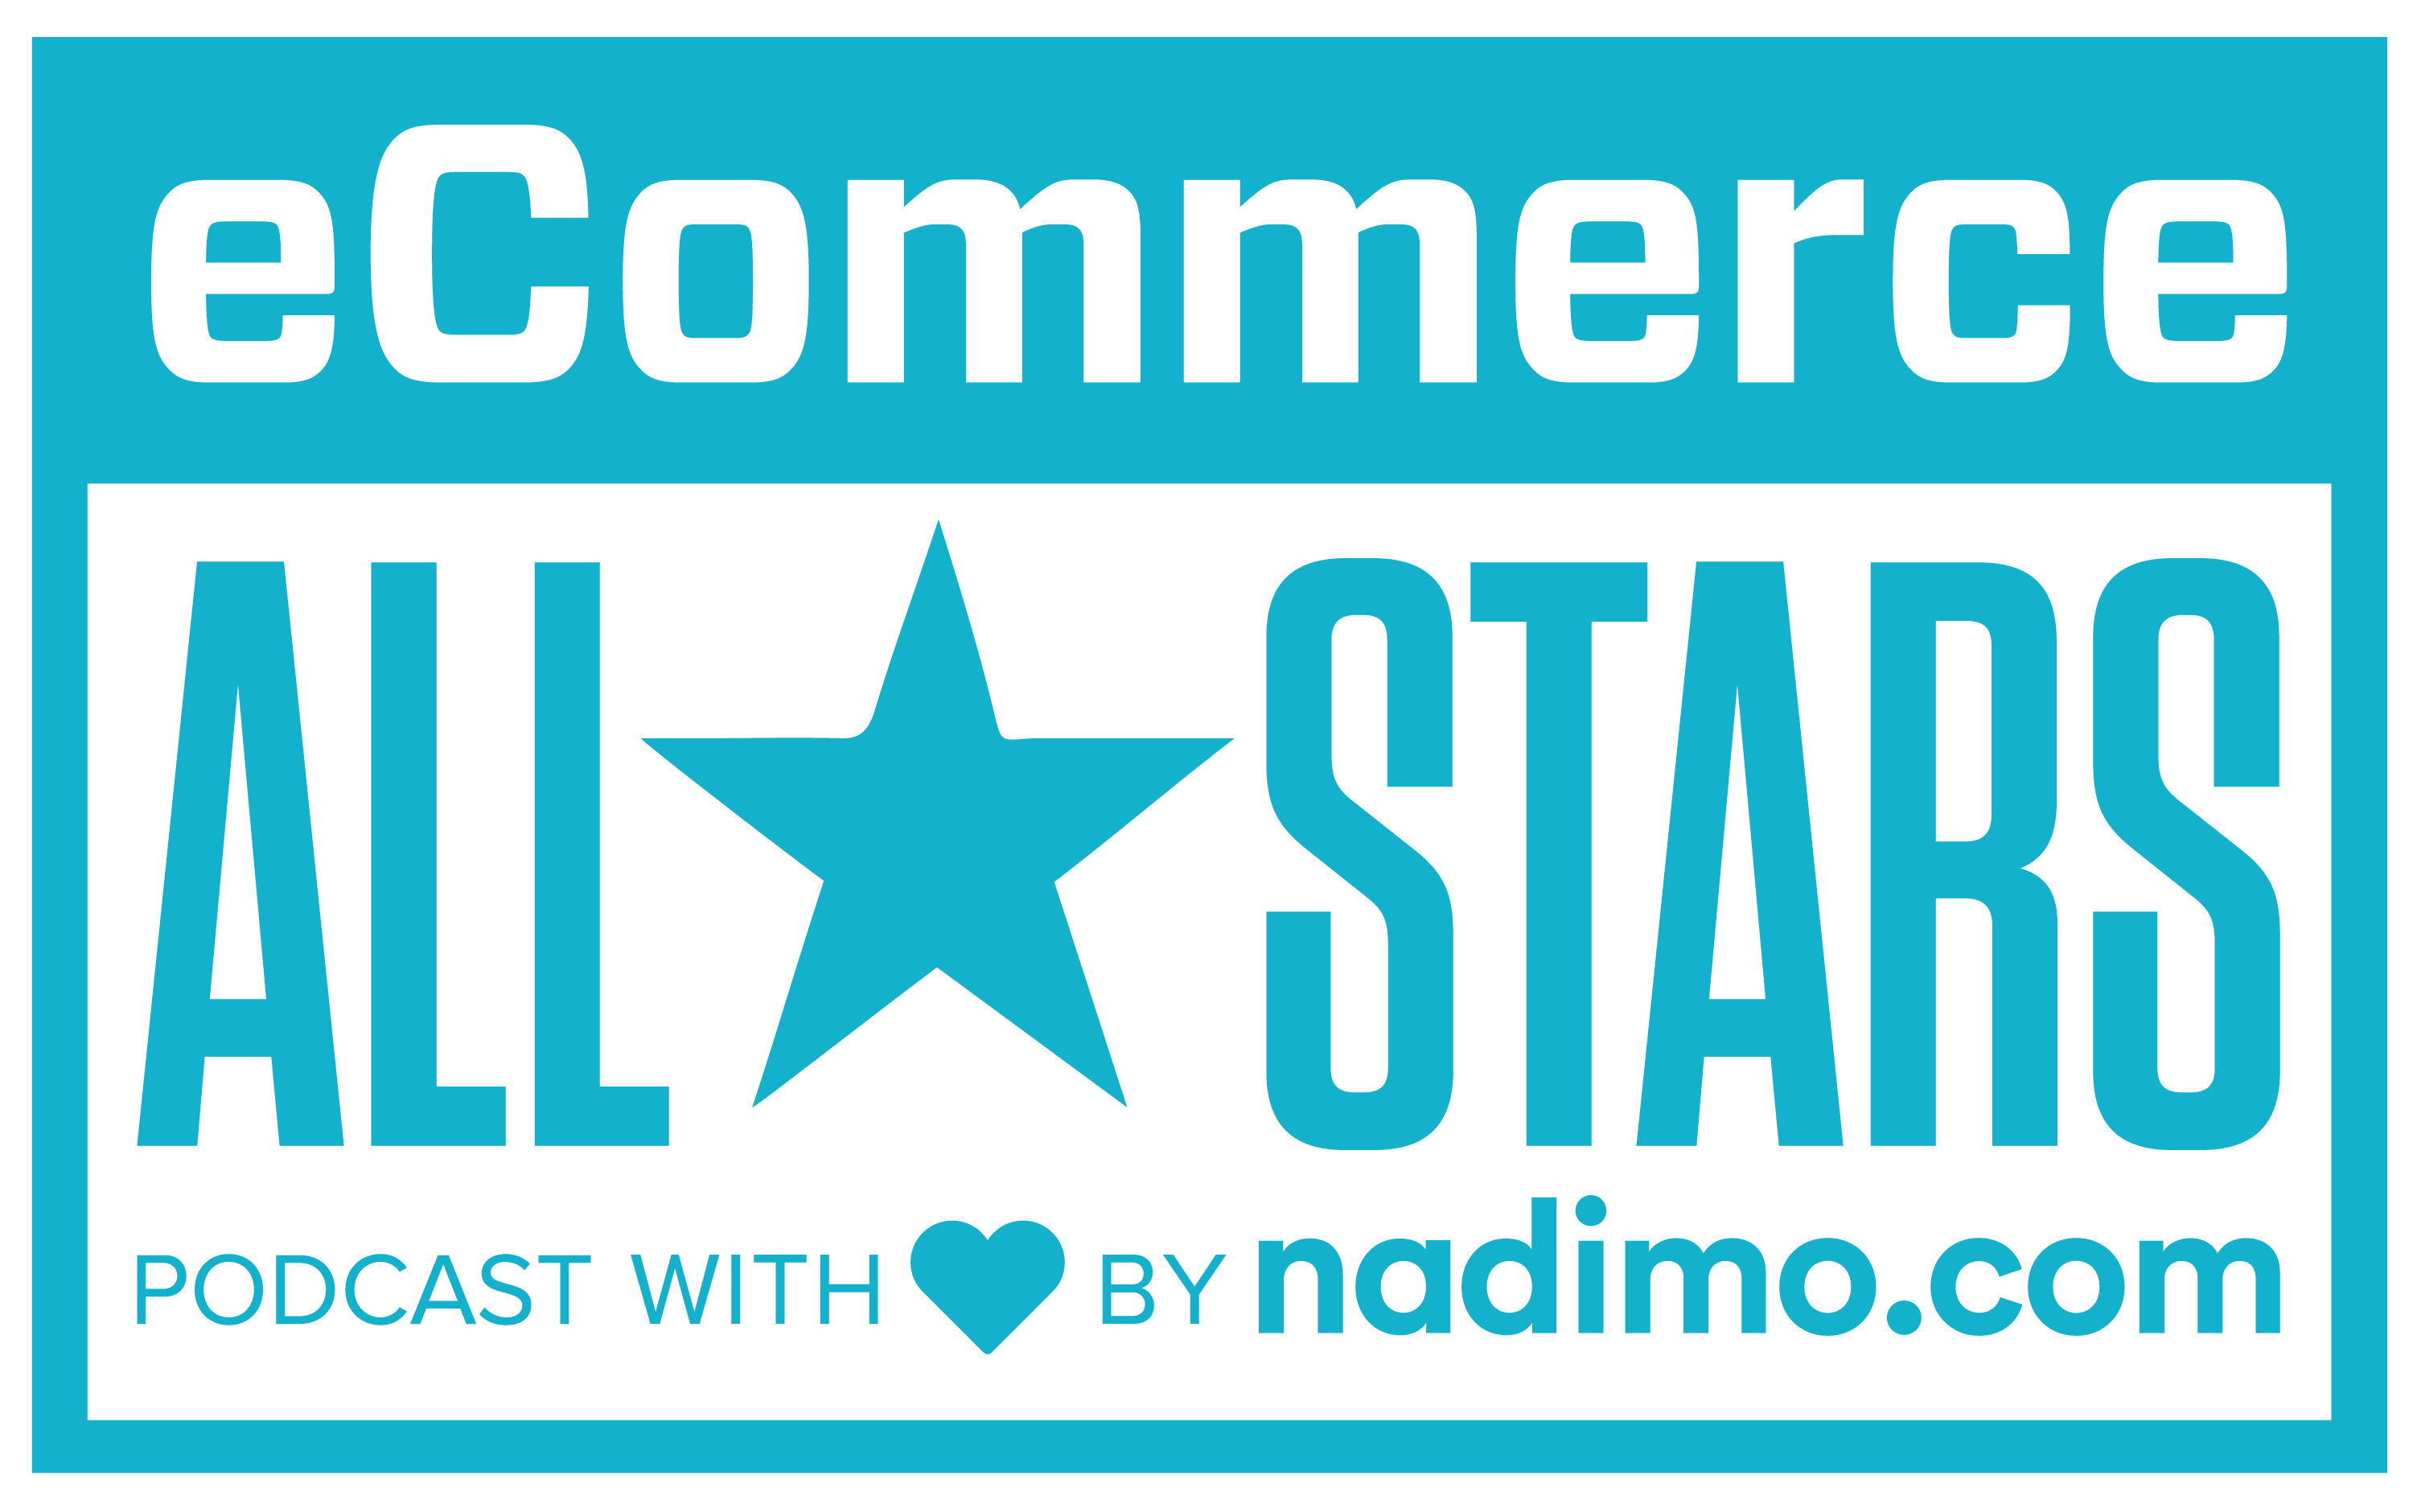 eCommerce All Stars